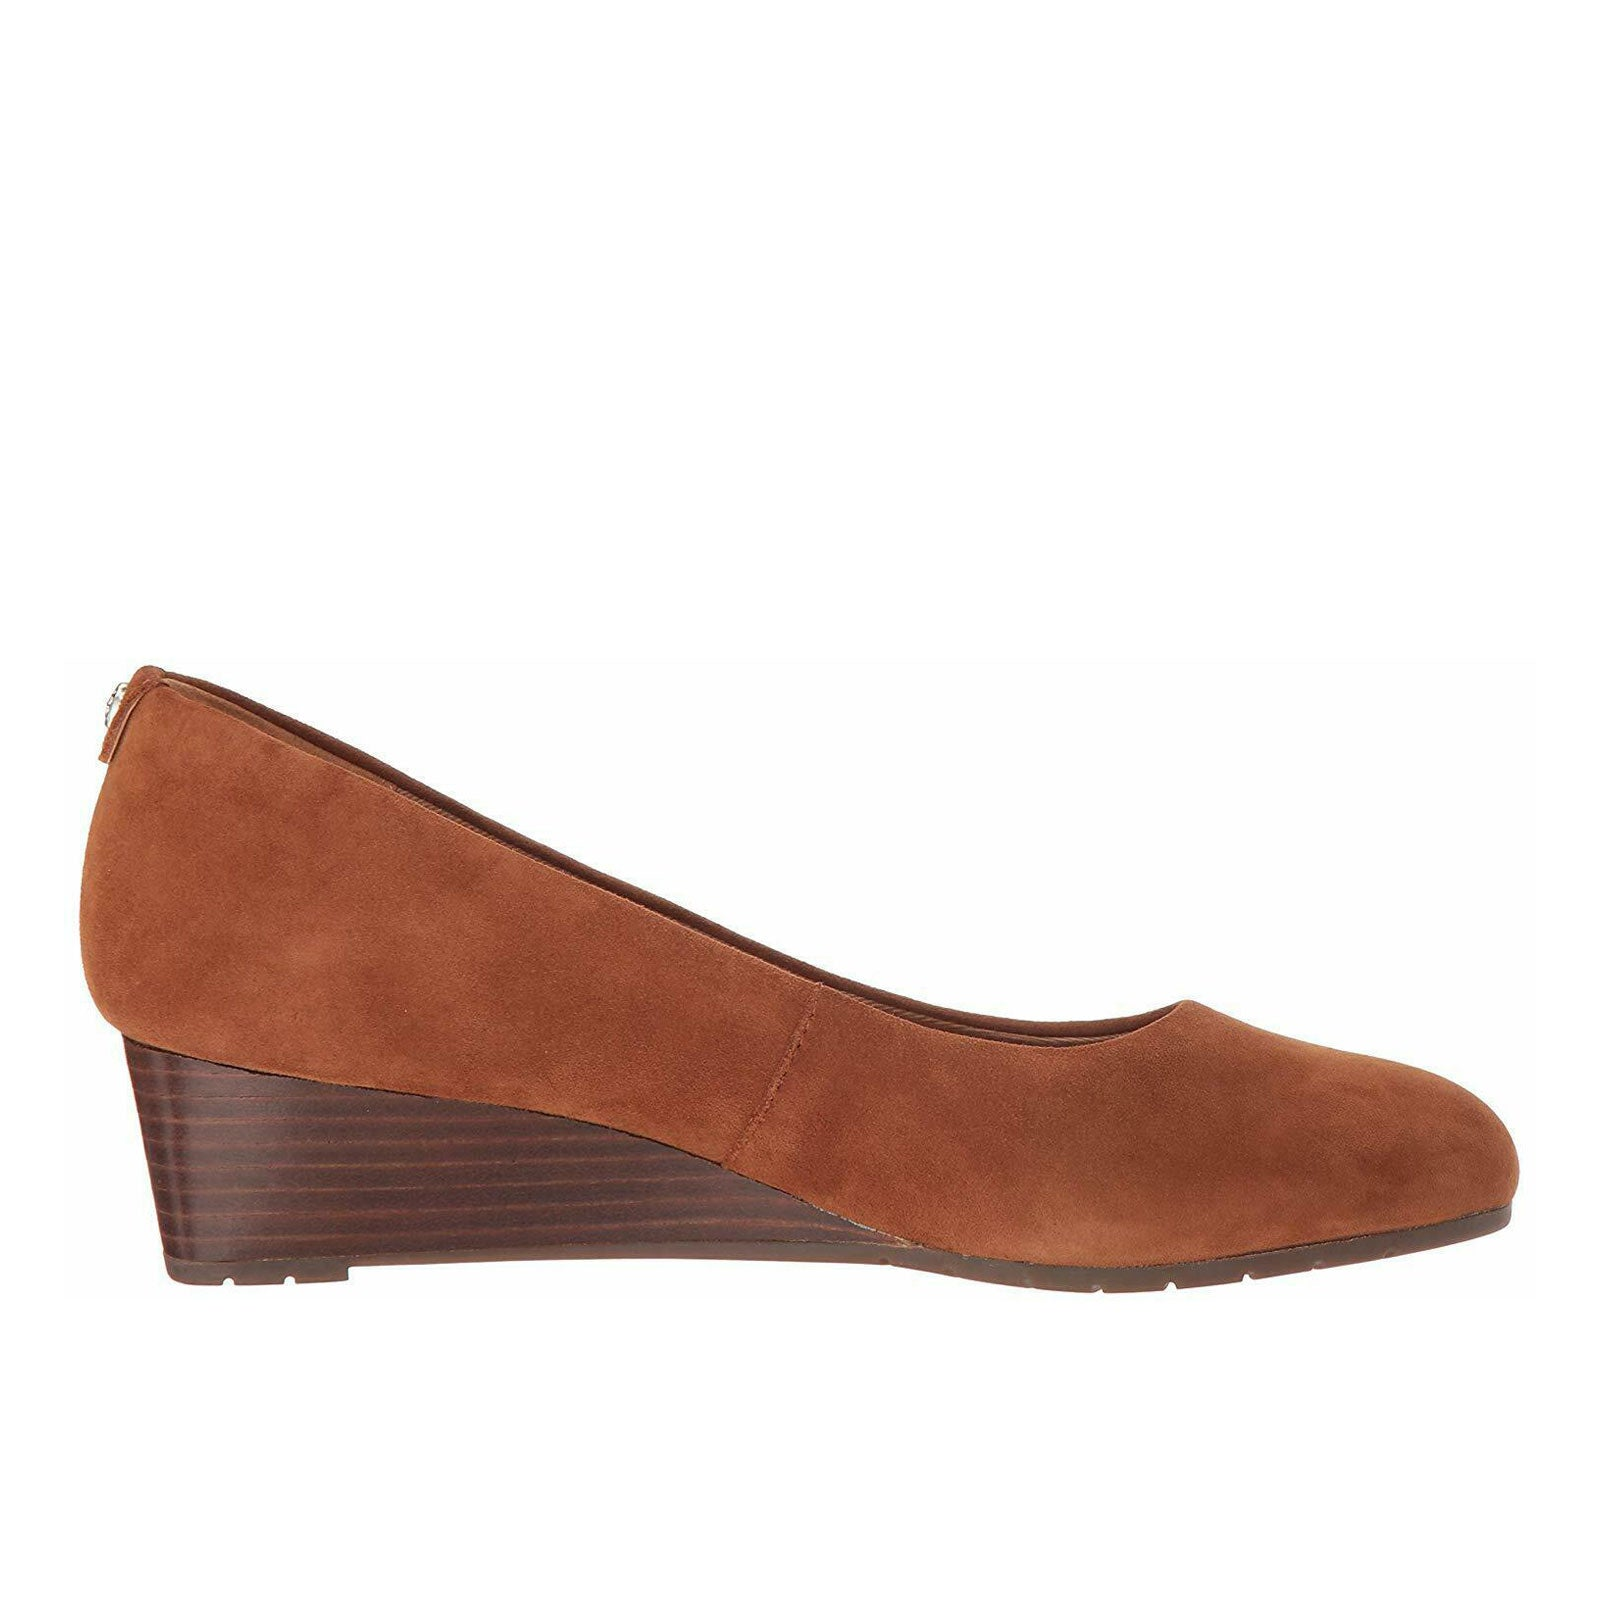 Clarks Vendra Bloom 29119 (Tan Suede)